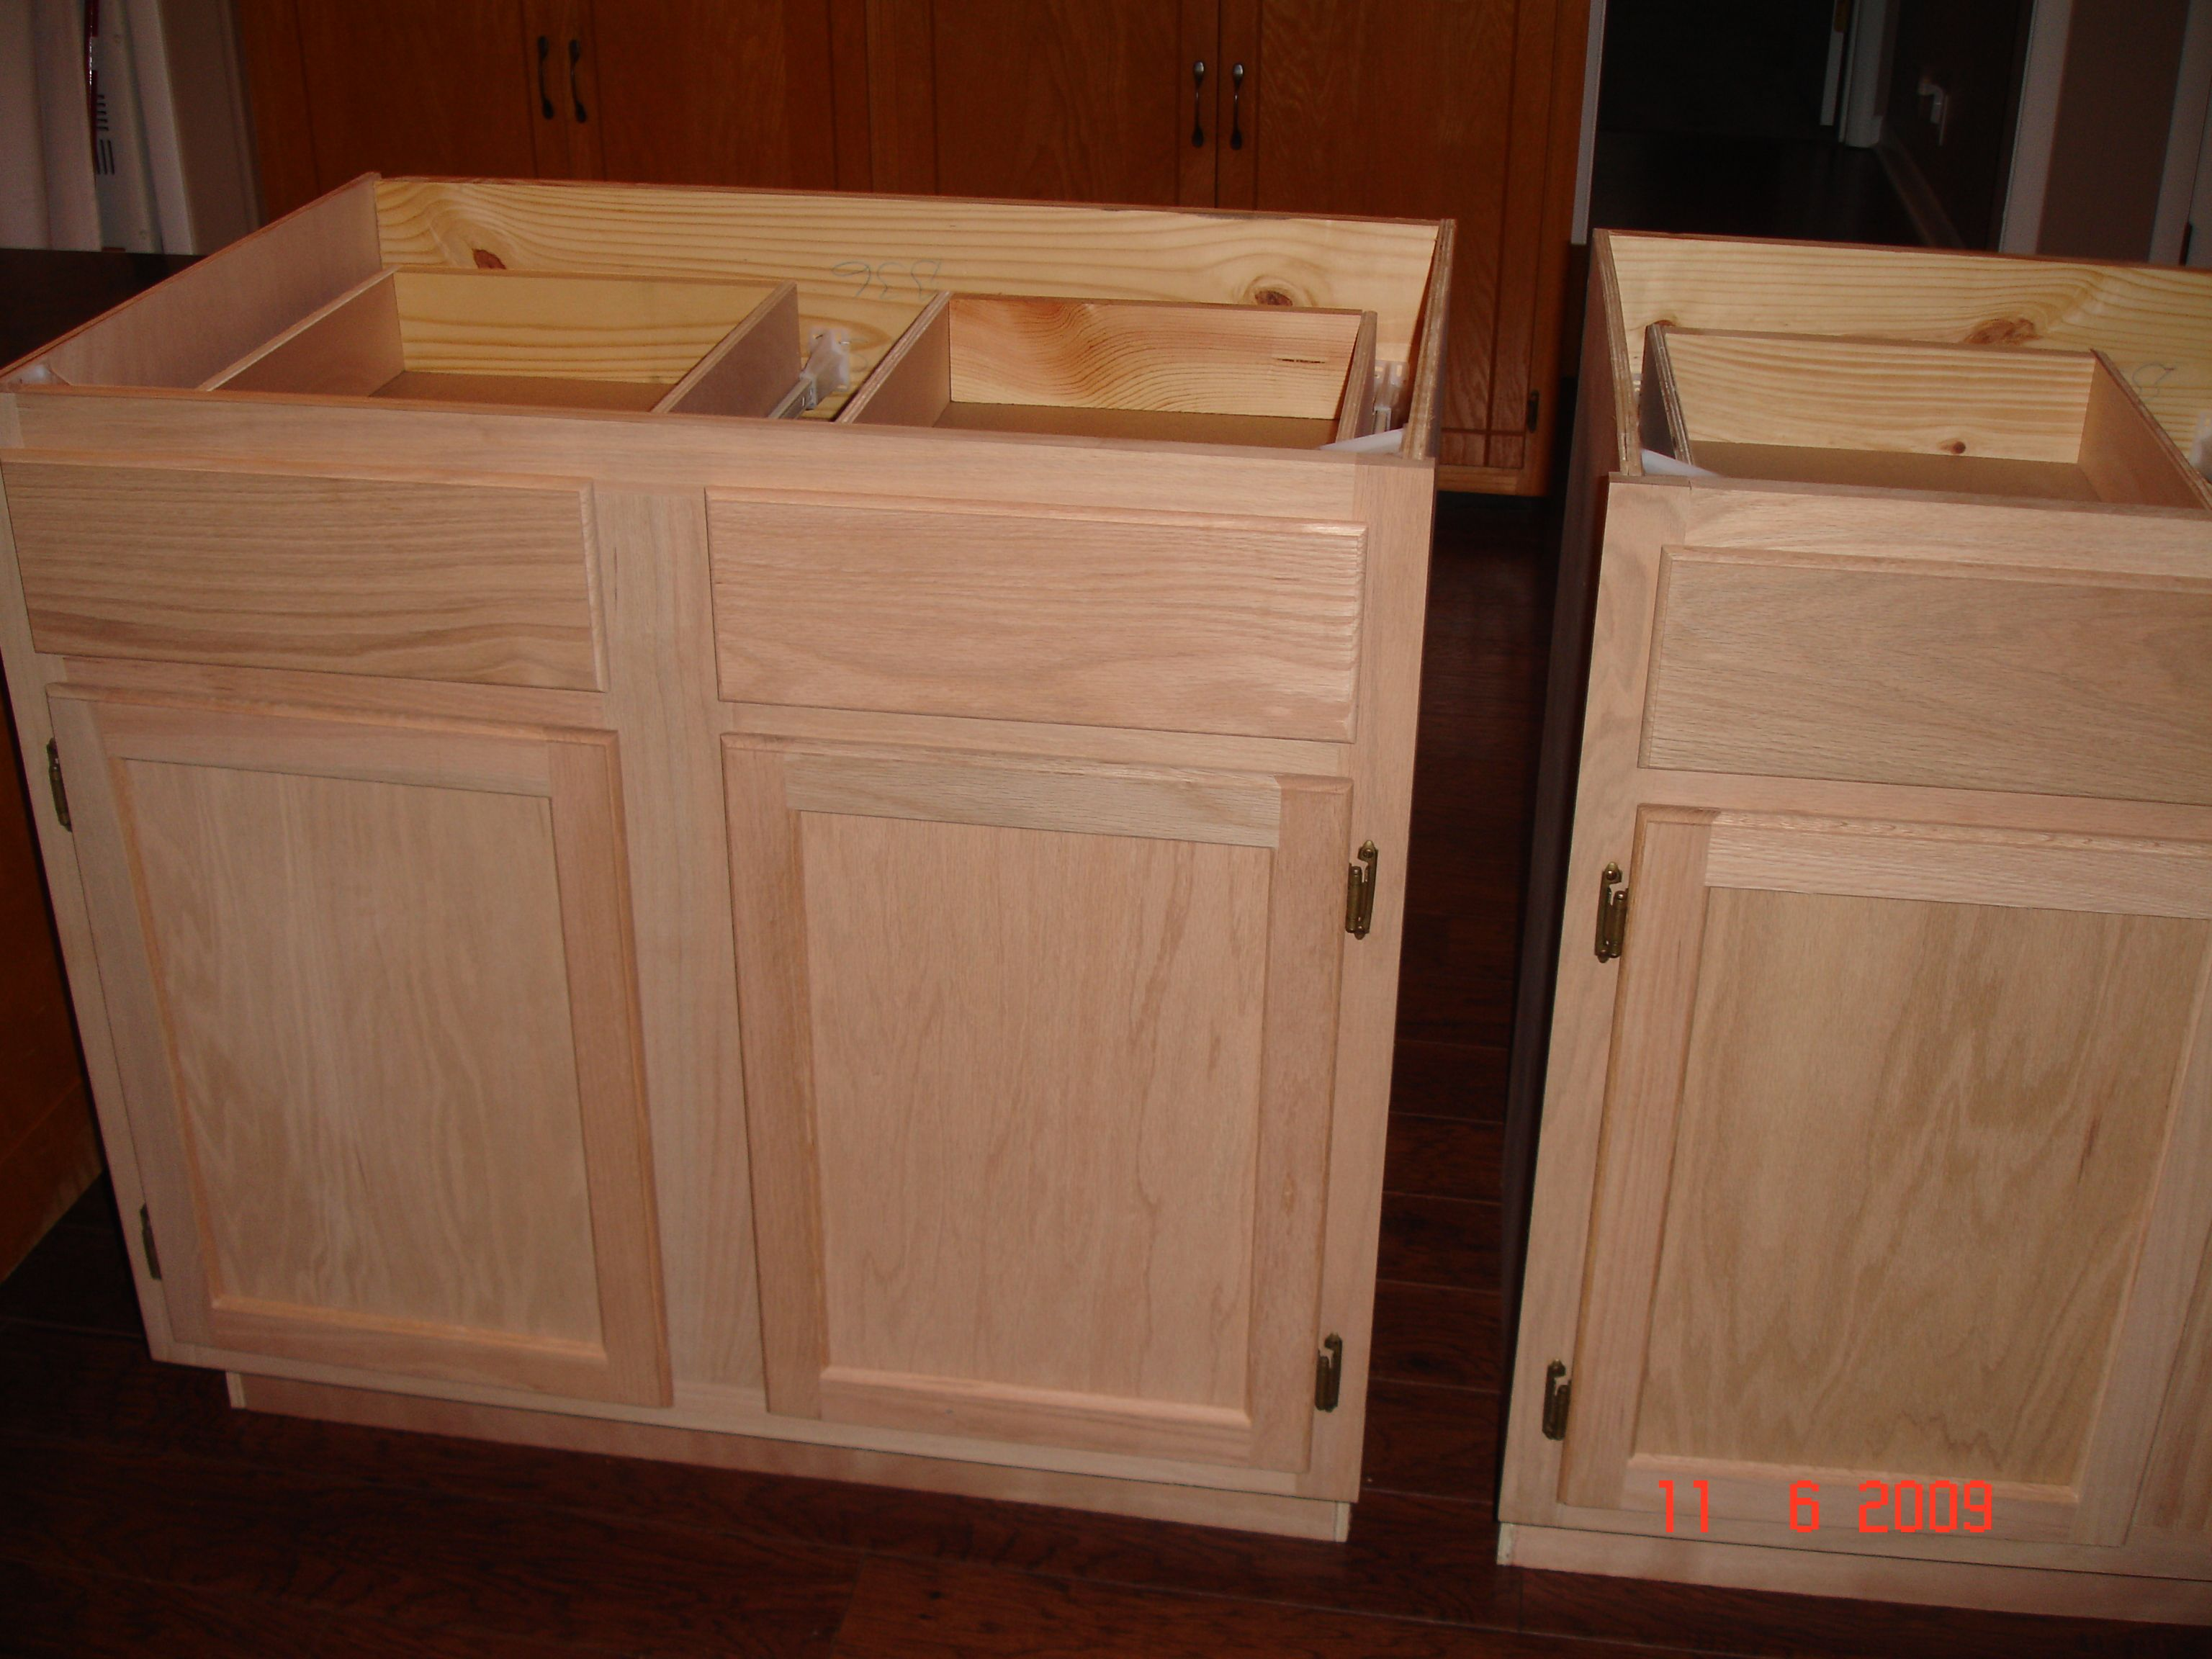 Diy Kitchen Island Made By Hubby Me From Unfinished Kitchen Cabinets Beadboard Stain And Countertop Love It